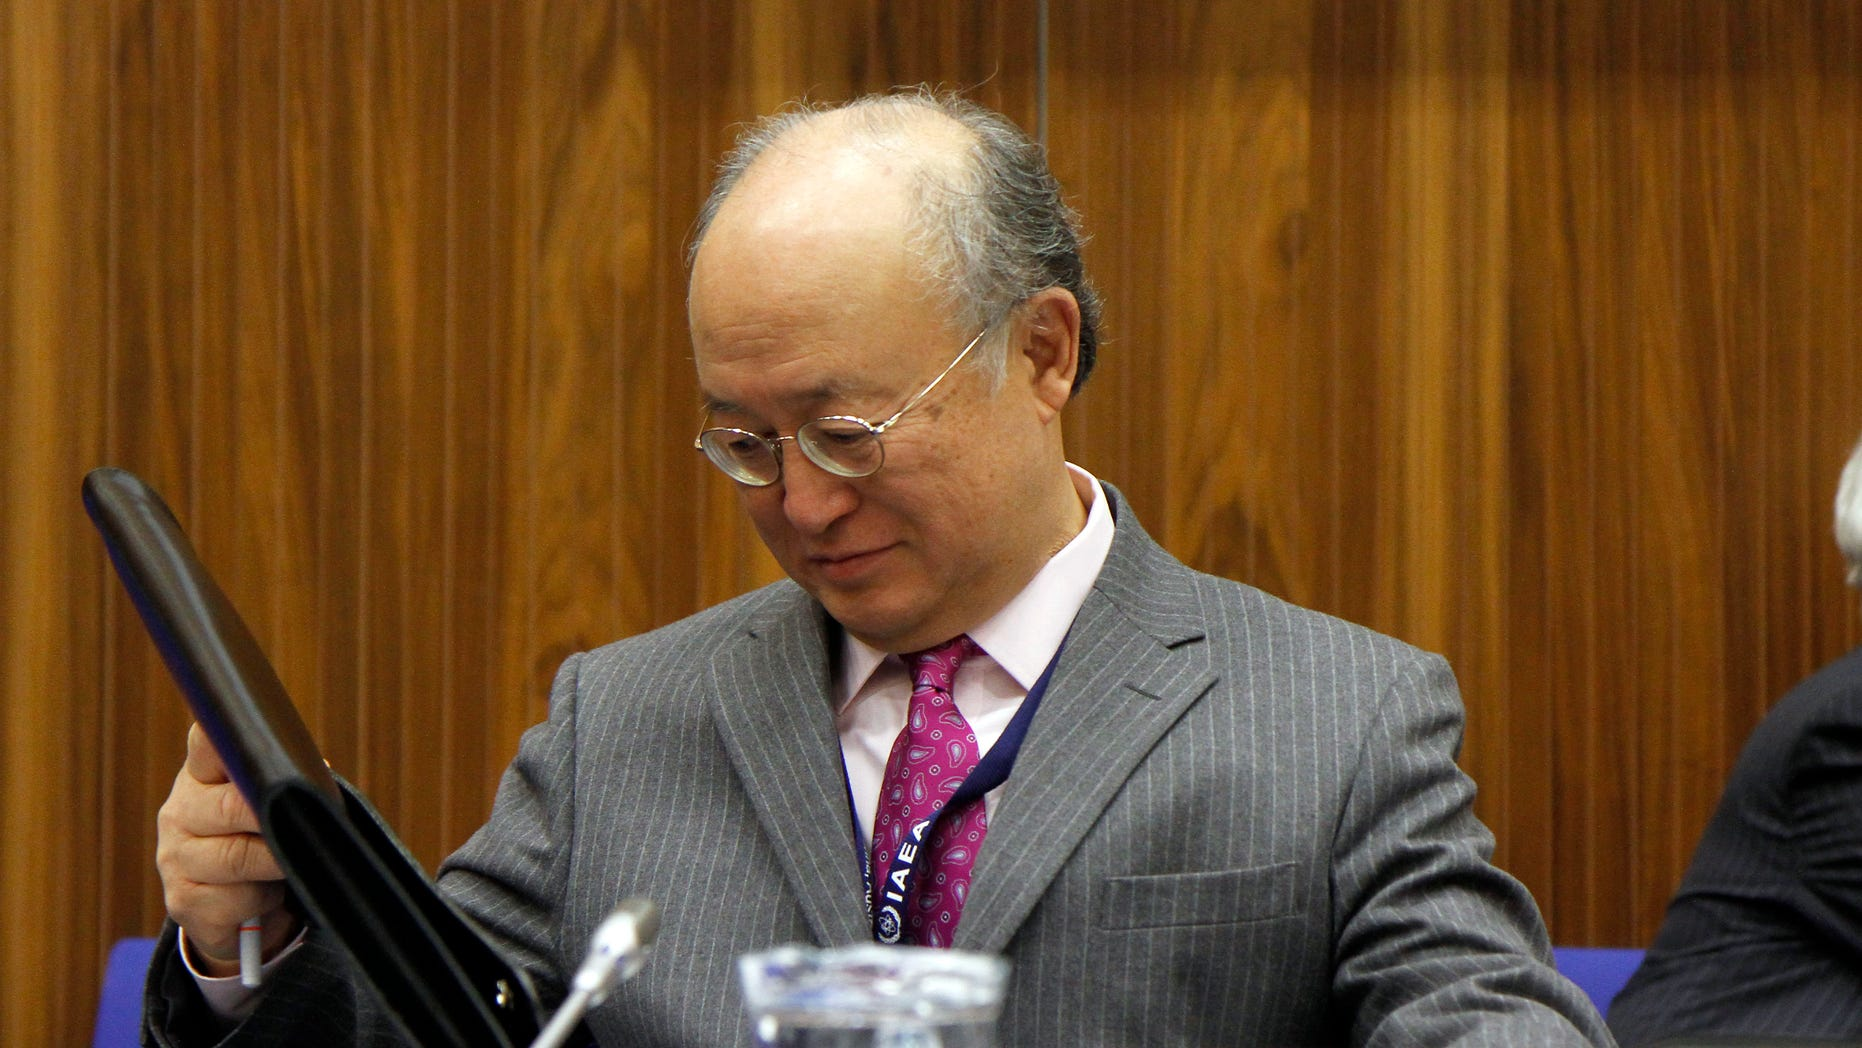 Dec. 3: Director General of the International Atomic Energy Agency, IAEA, Yukiya Amano from Japan, waits for the start of the IAEA's board of governors meeting at the International Center in Vienna, Austria.